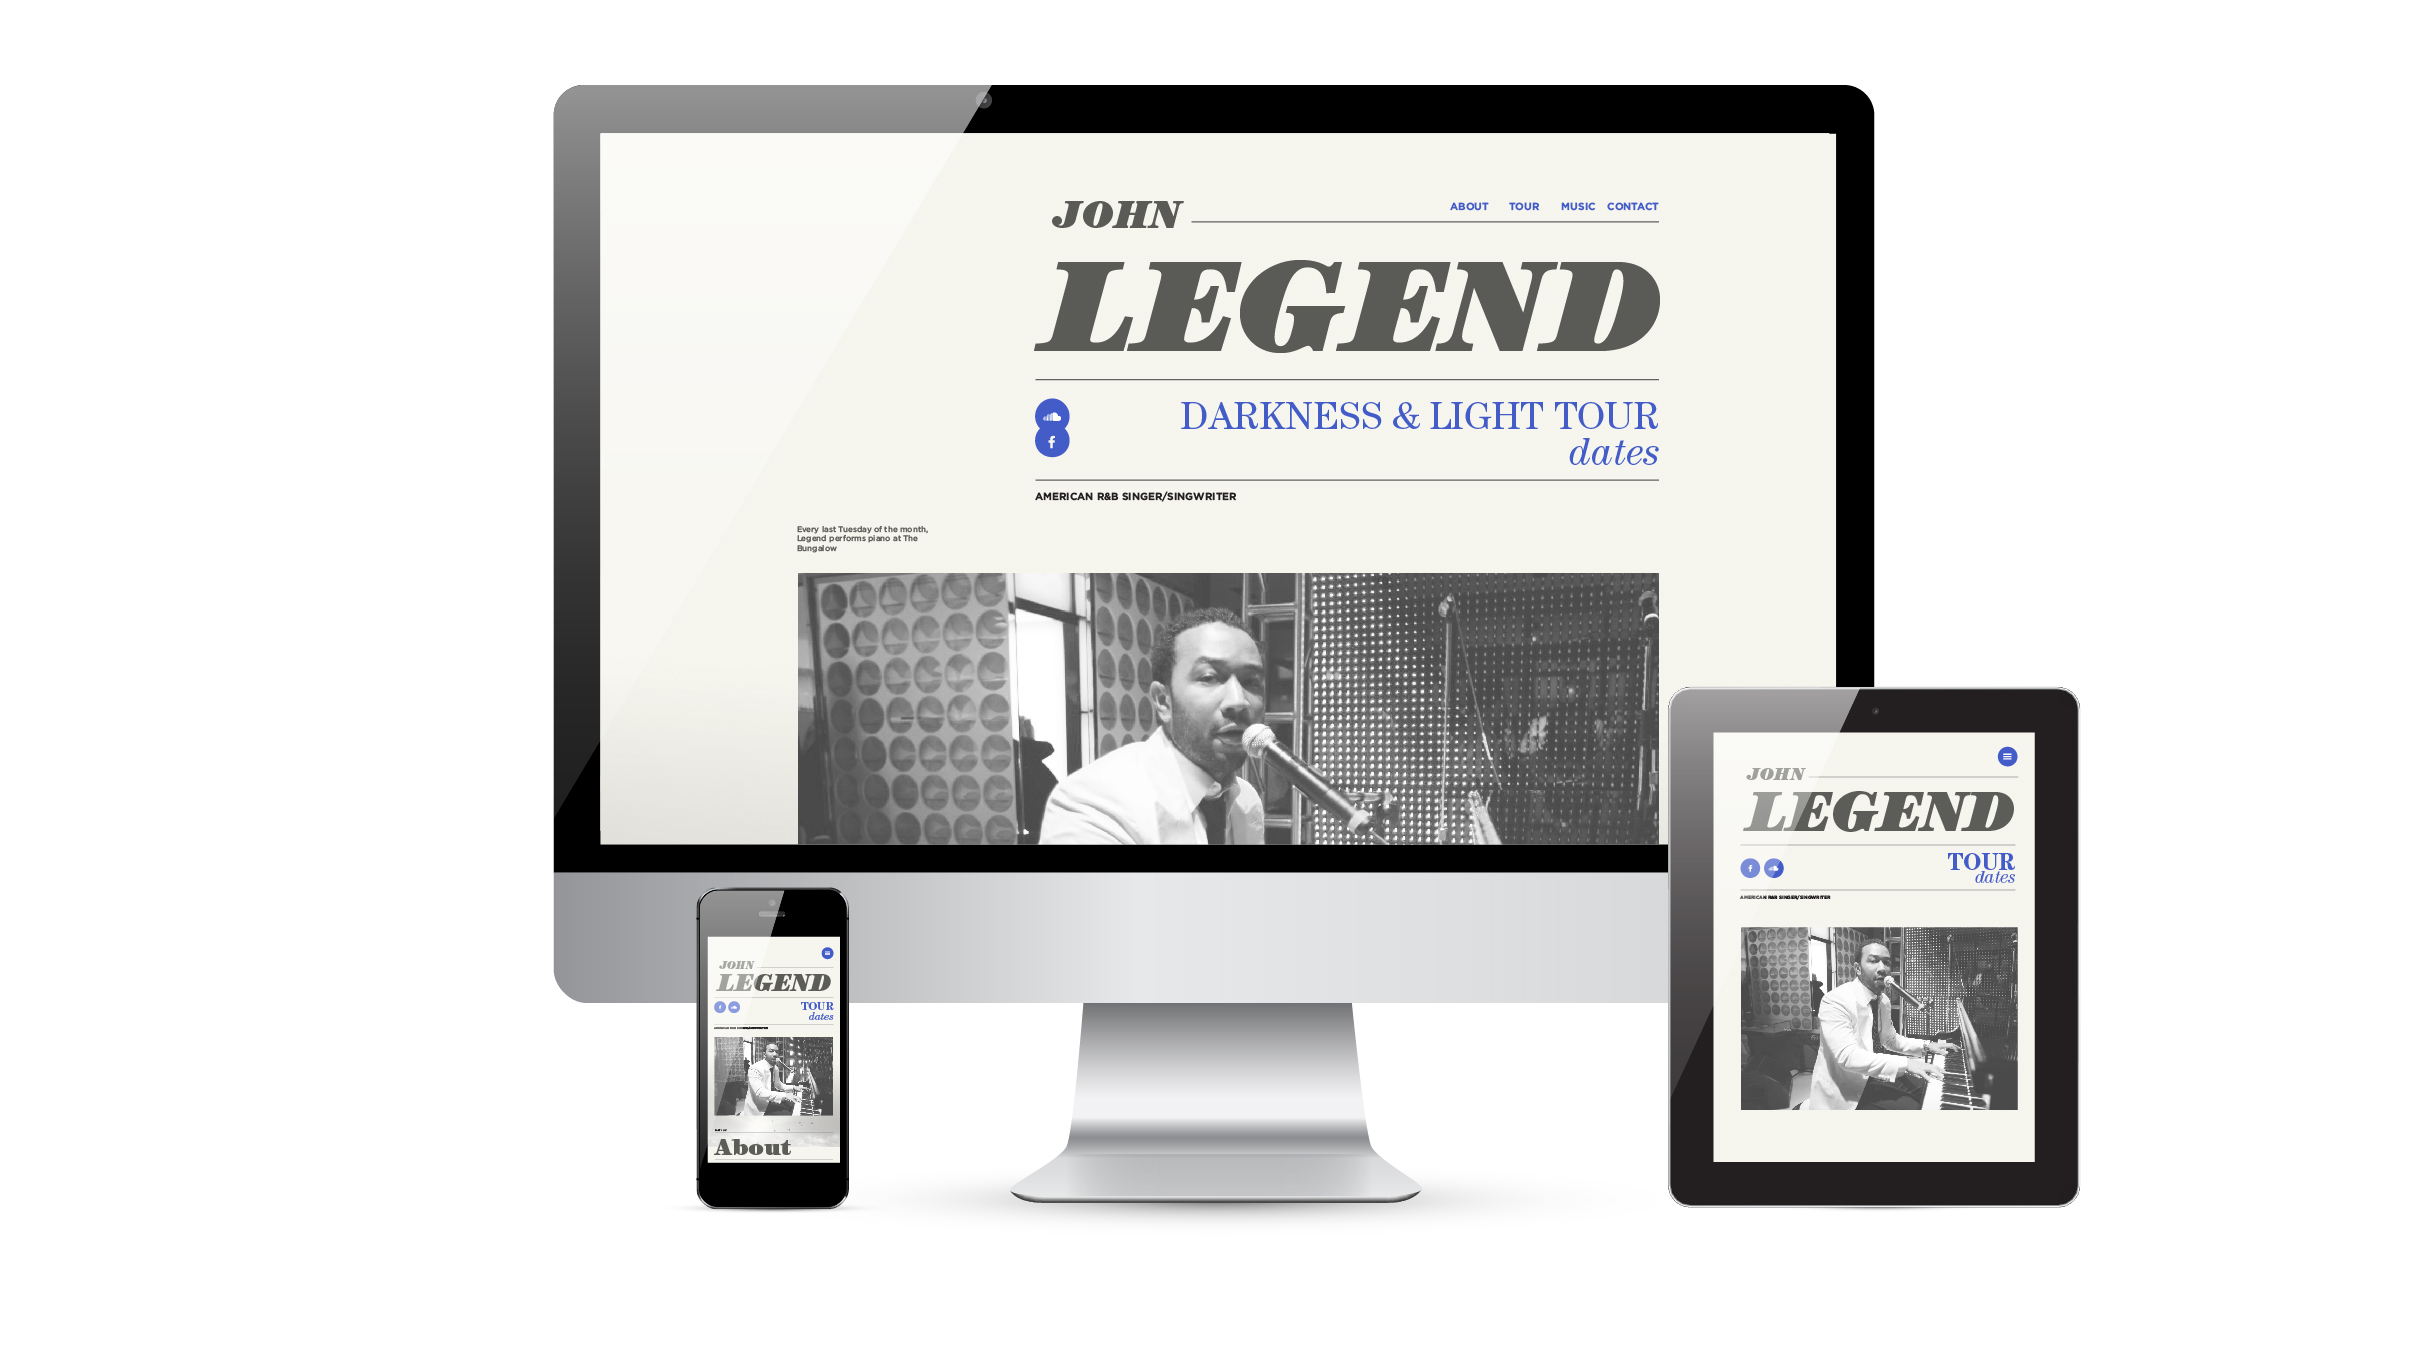 LEGEND_layout-03.jpg